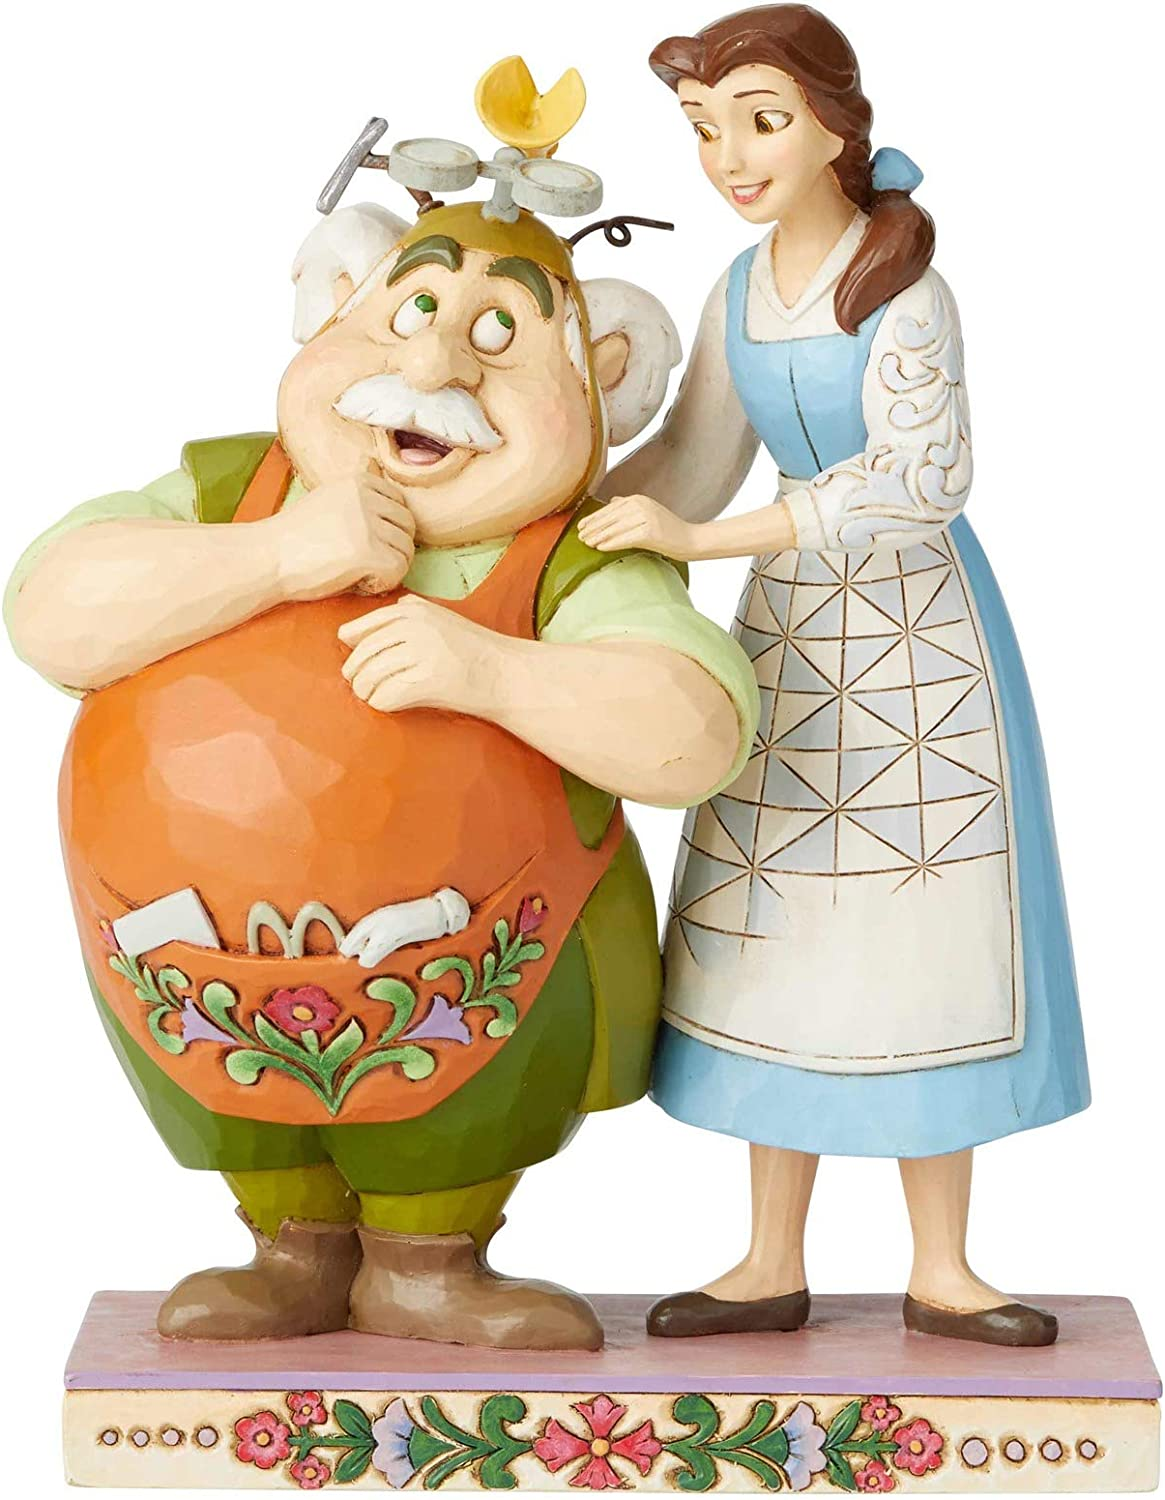 Enesco Disney Traditions by Jim Shore Beauty and The Beast Belle and Maurice The Inventor Figurine, 9 Inch, Multicolor